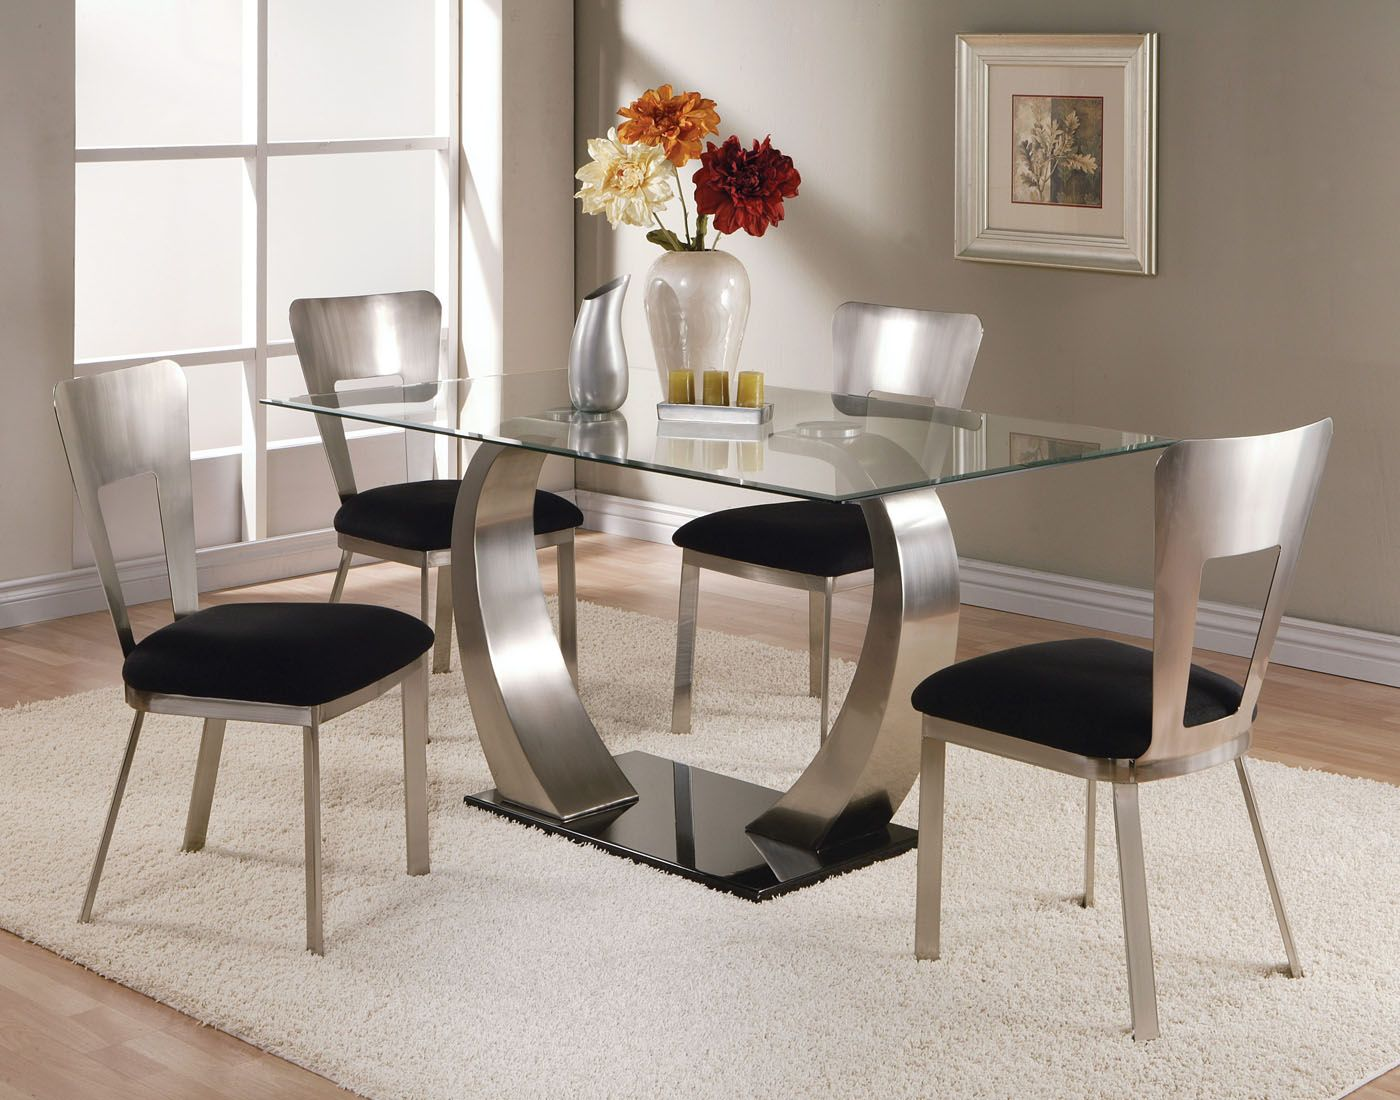 Contemporary dining table bases  Modern dining set So clean looking  Dining set  Pinterest